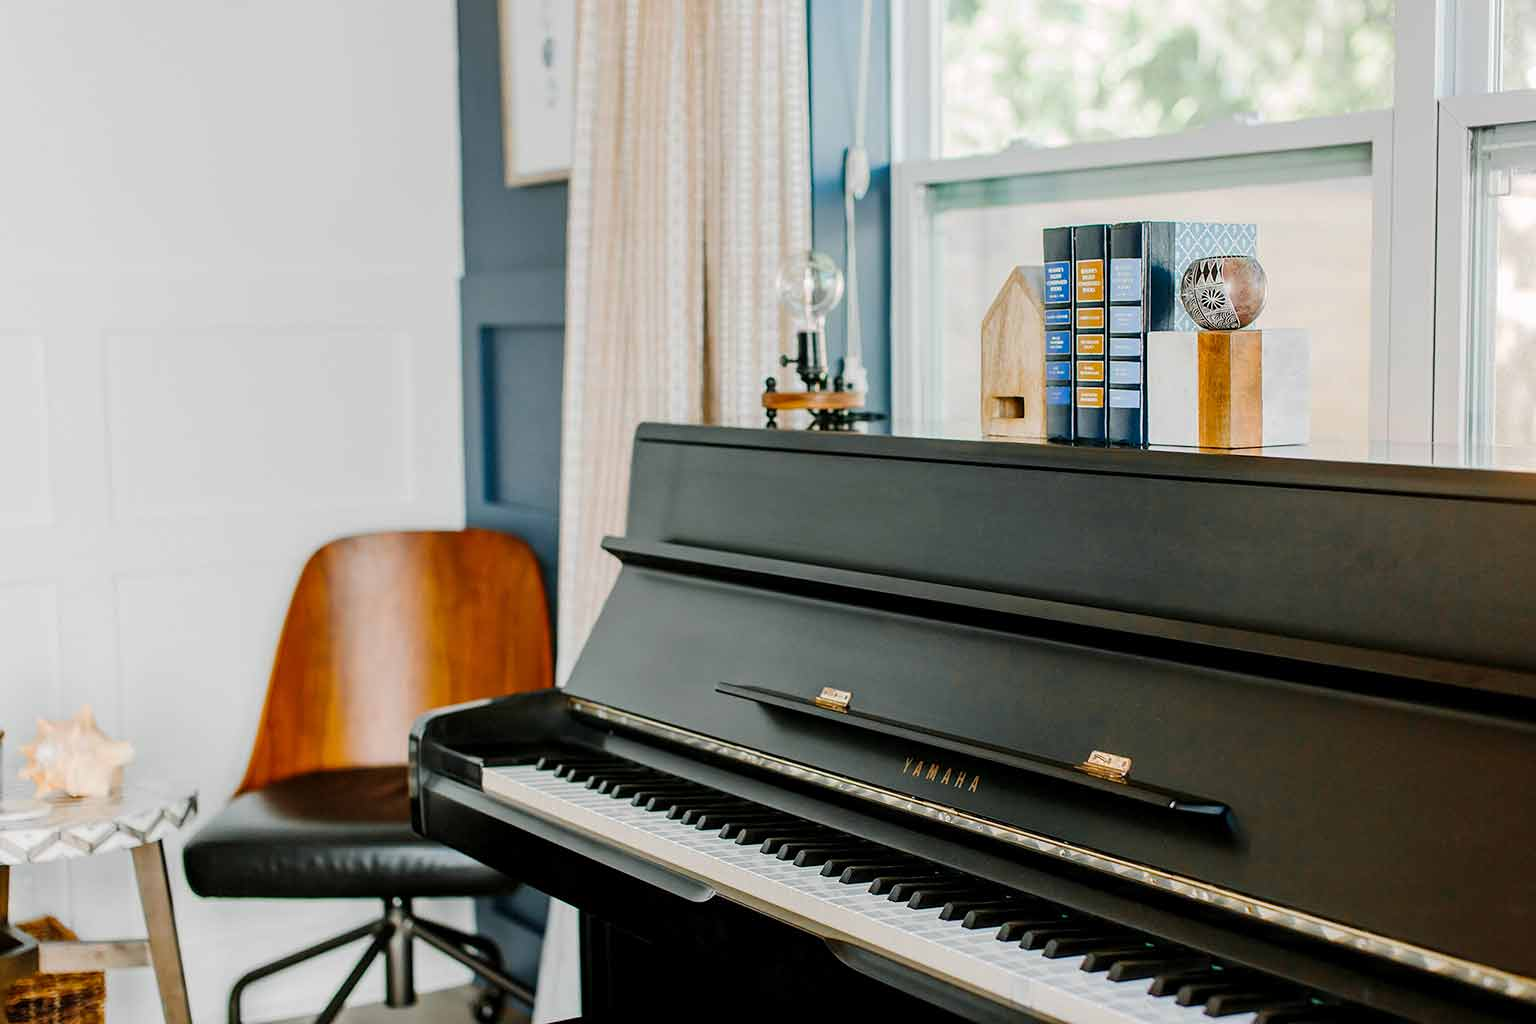 Yamaha upright piano - The Guest House Reveal - That Homebird Life Blog